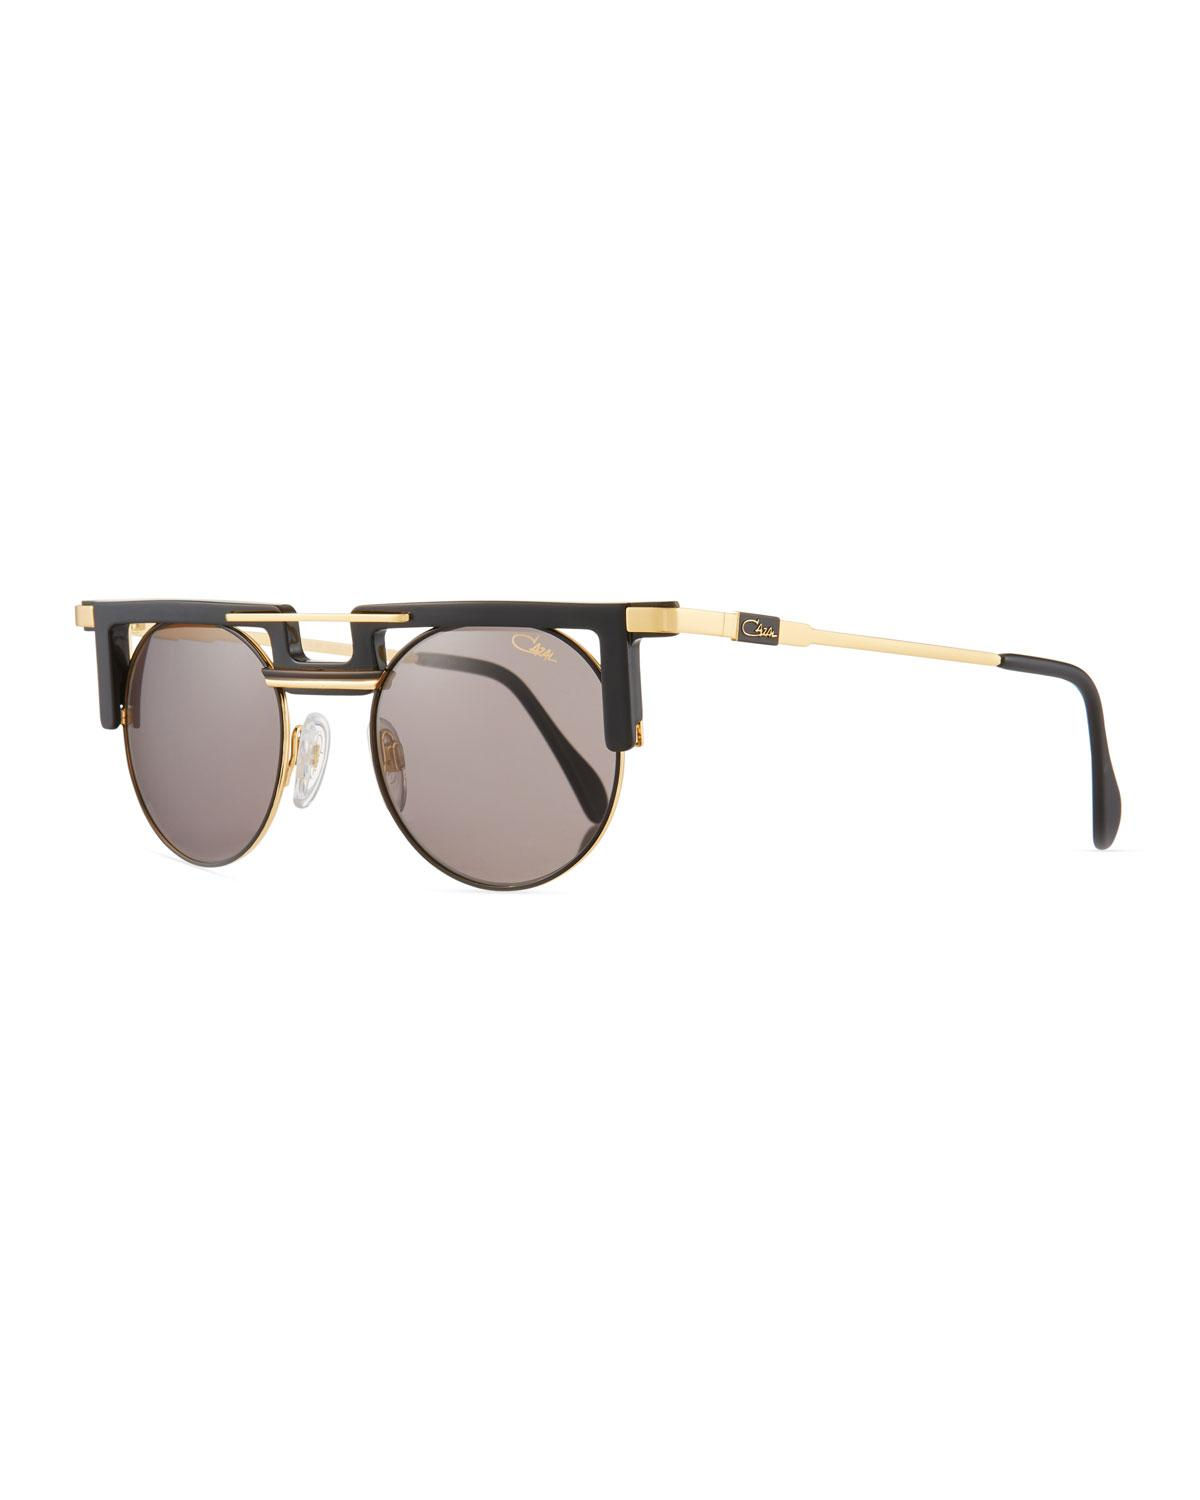 042a4a38fabe Lyst - Cazal Men s Round Acetate metal Sunglasses in Metallic for Men